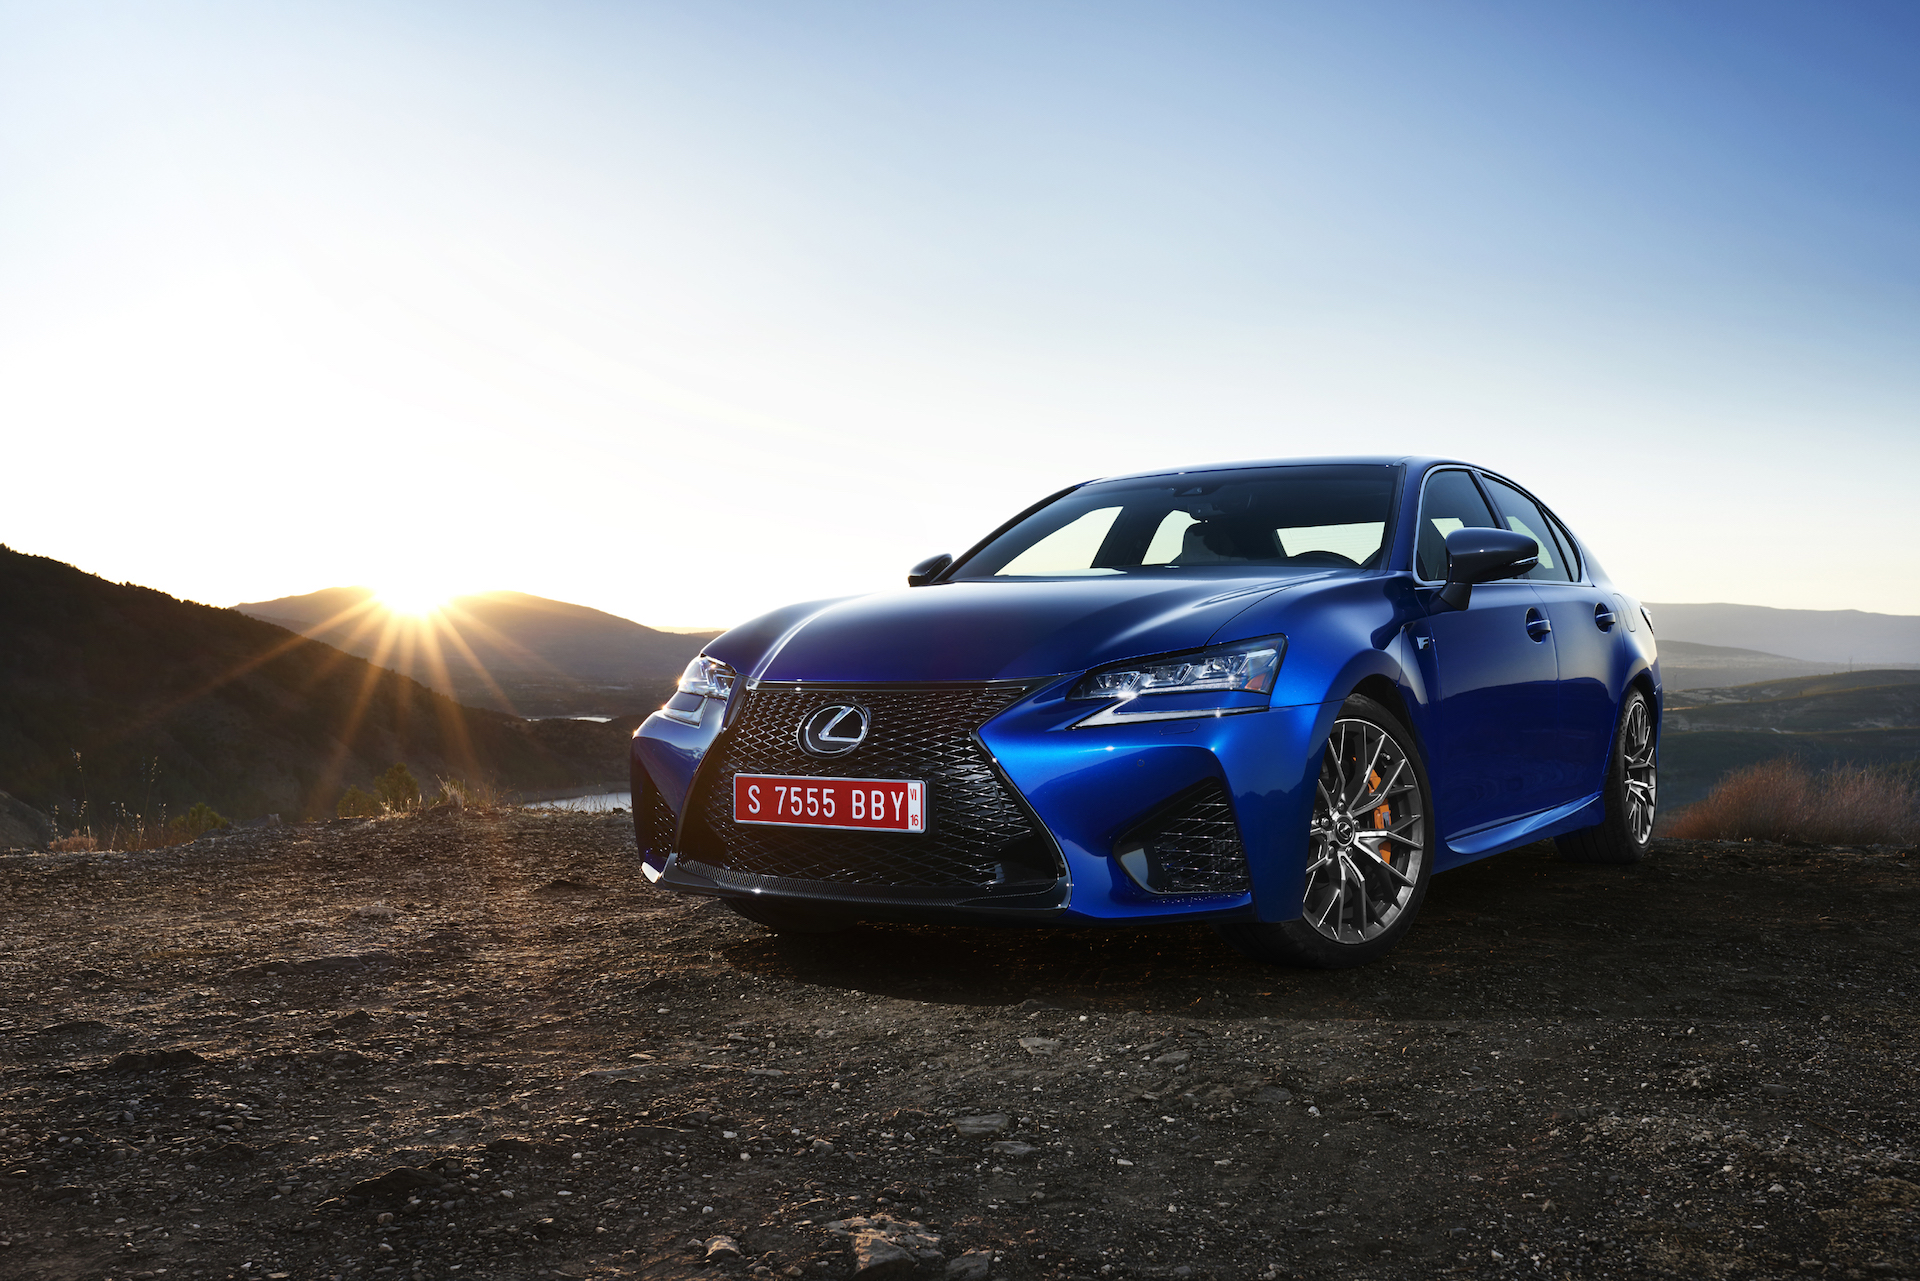 2018 Lexus GS F Safety Review and Crash Test Ratings The Car